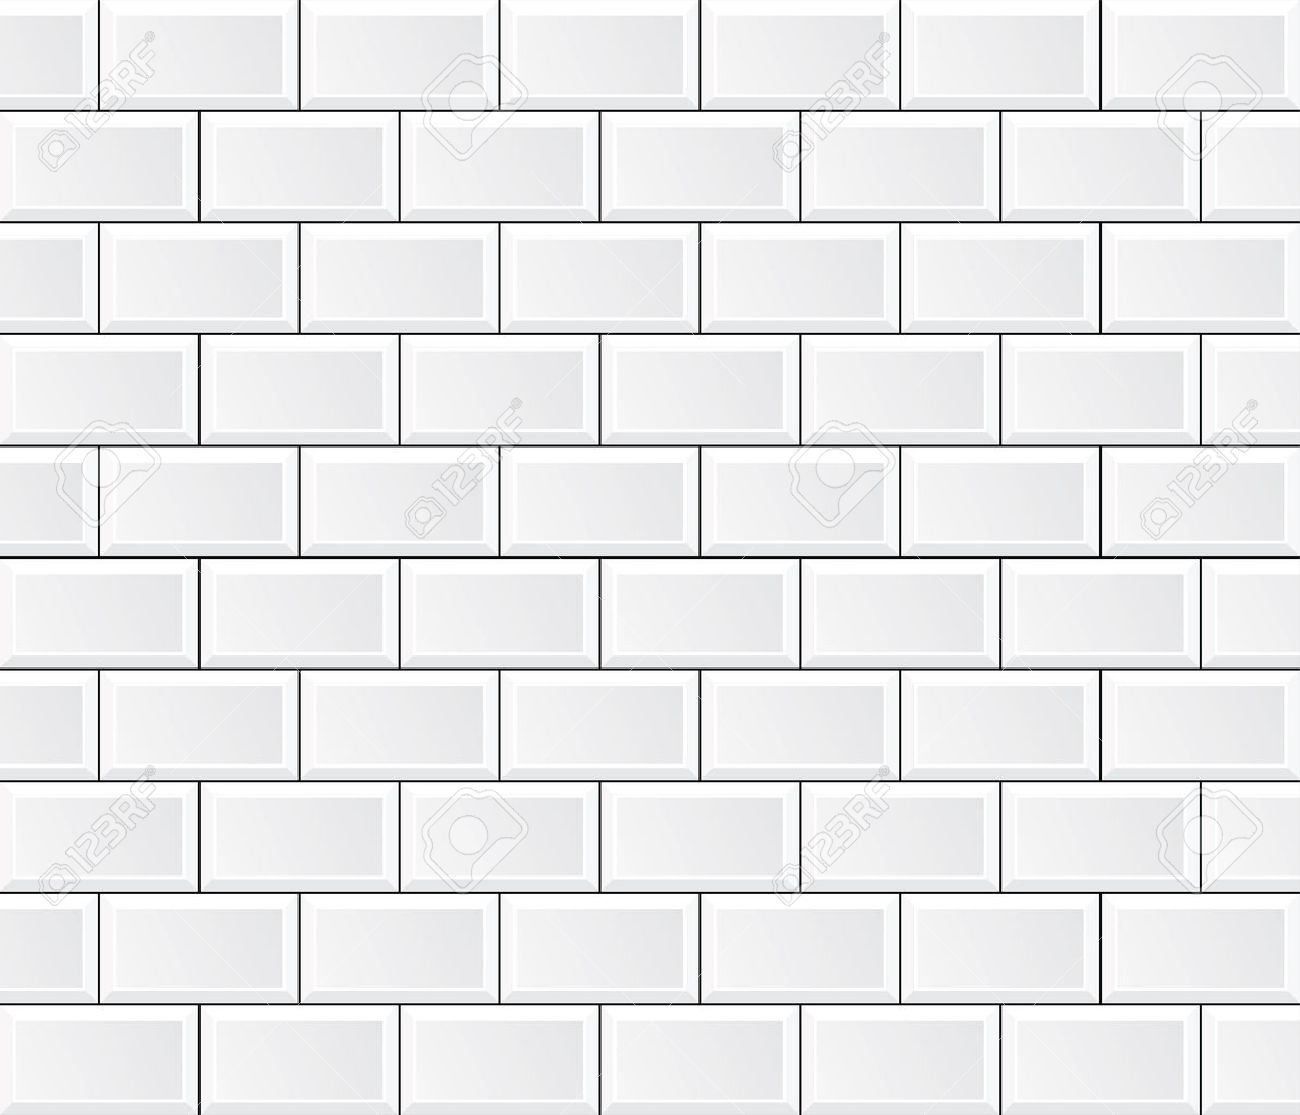 White Tile Stunning Vector White Tile Wall Royalty Free Cliparts Vectors And Stock Design Decoration